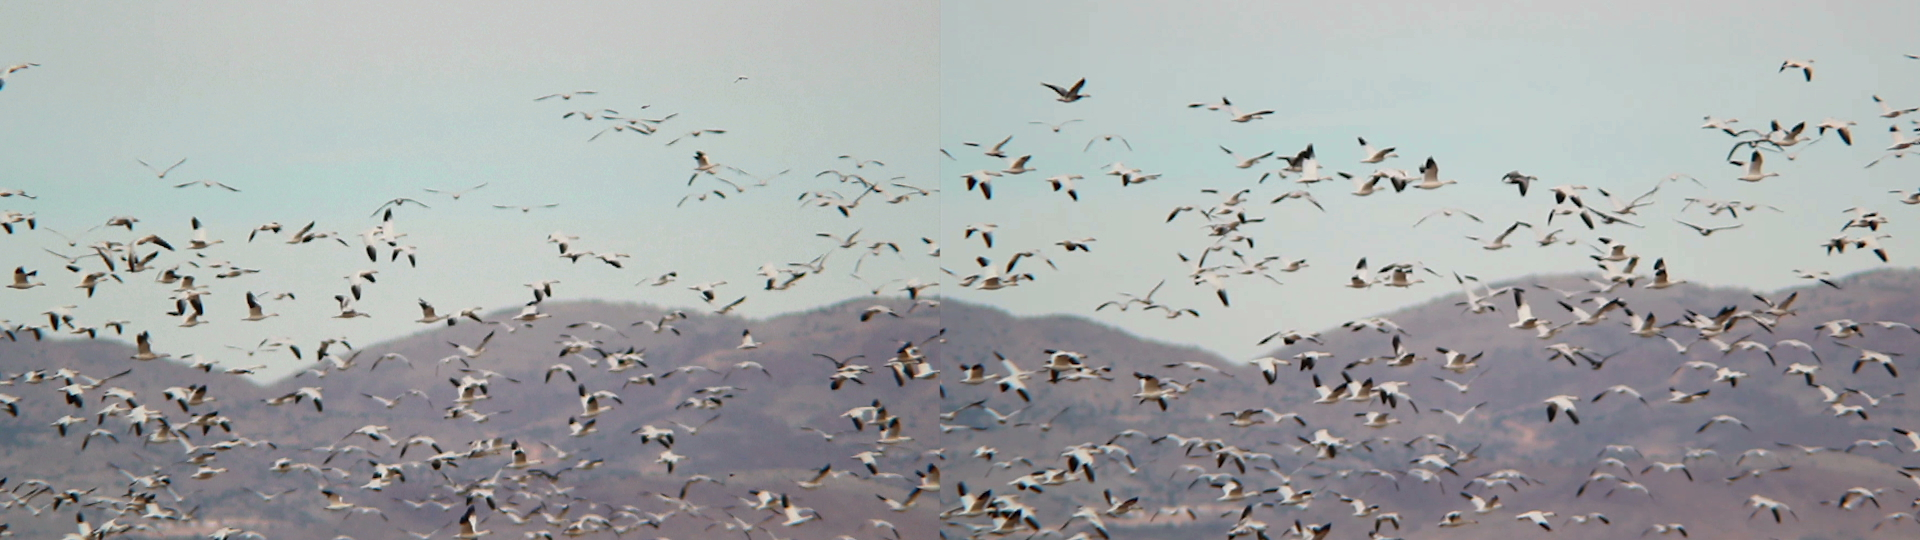 The Royal Road Project_birds_flight